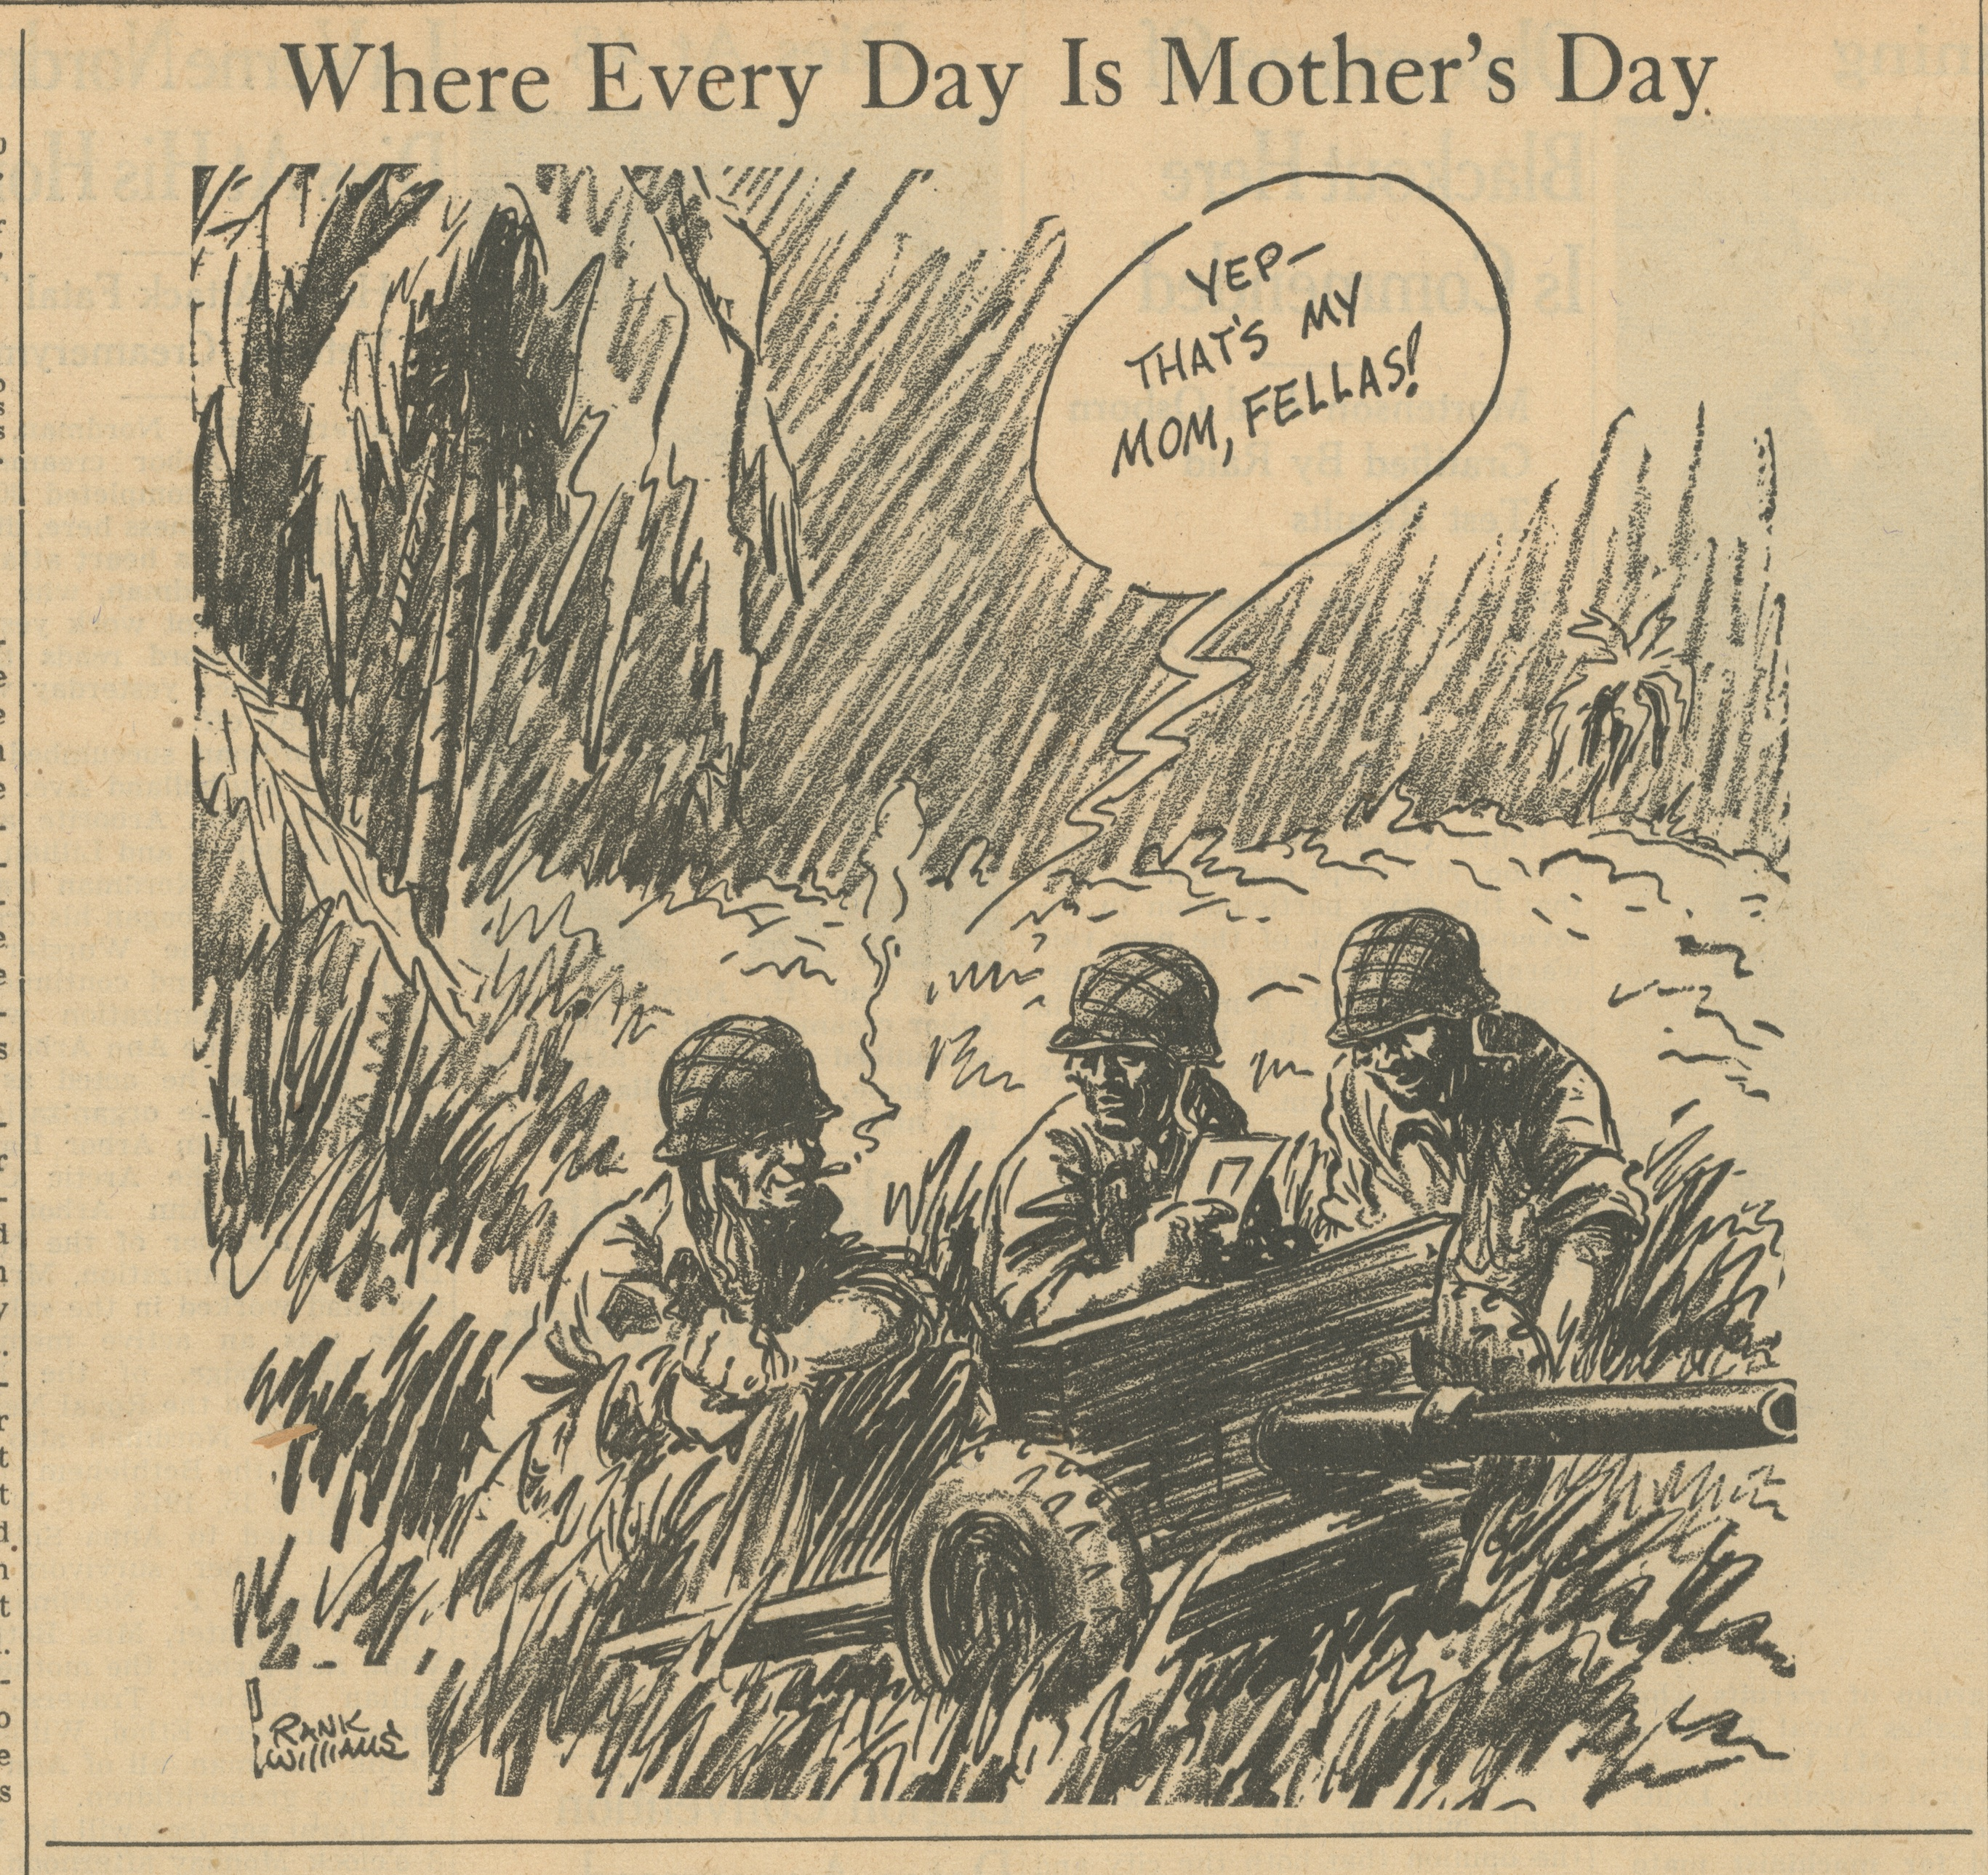 Where Every Day Is Mother's Day image